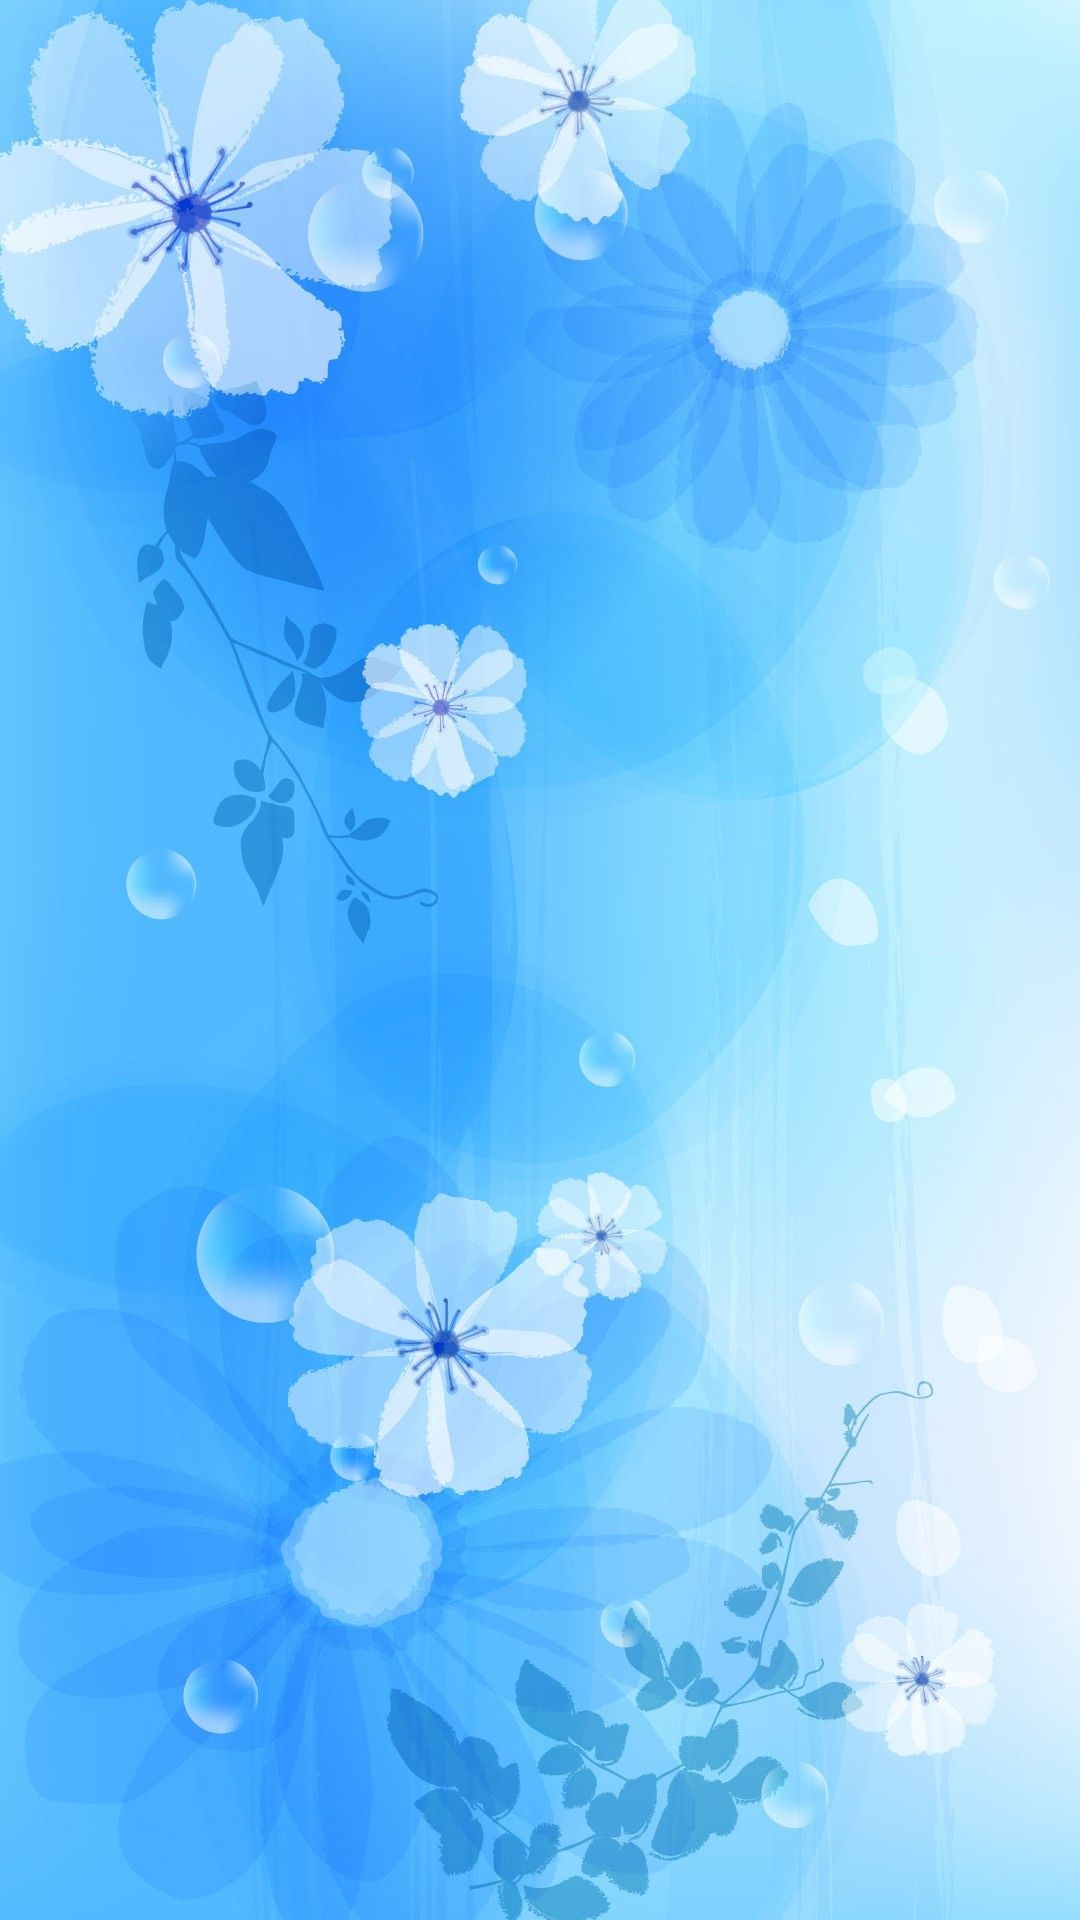 Girly Blue Iphone Wallpaper Iphone Wallpaper Blue Flower